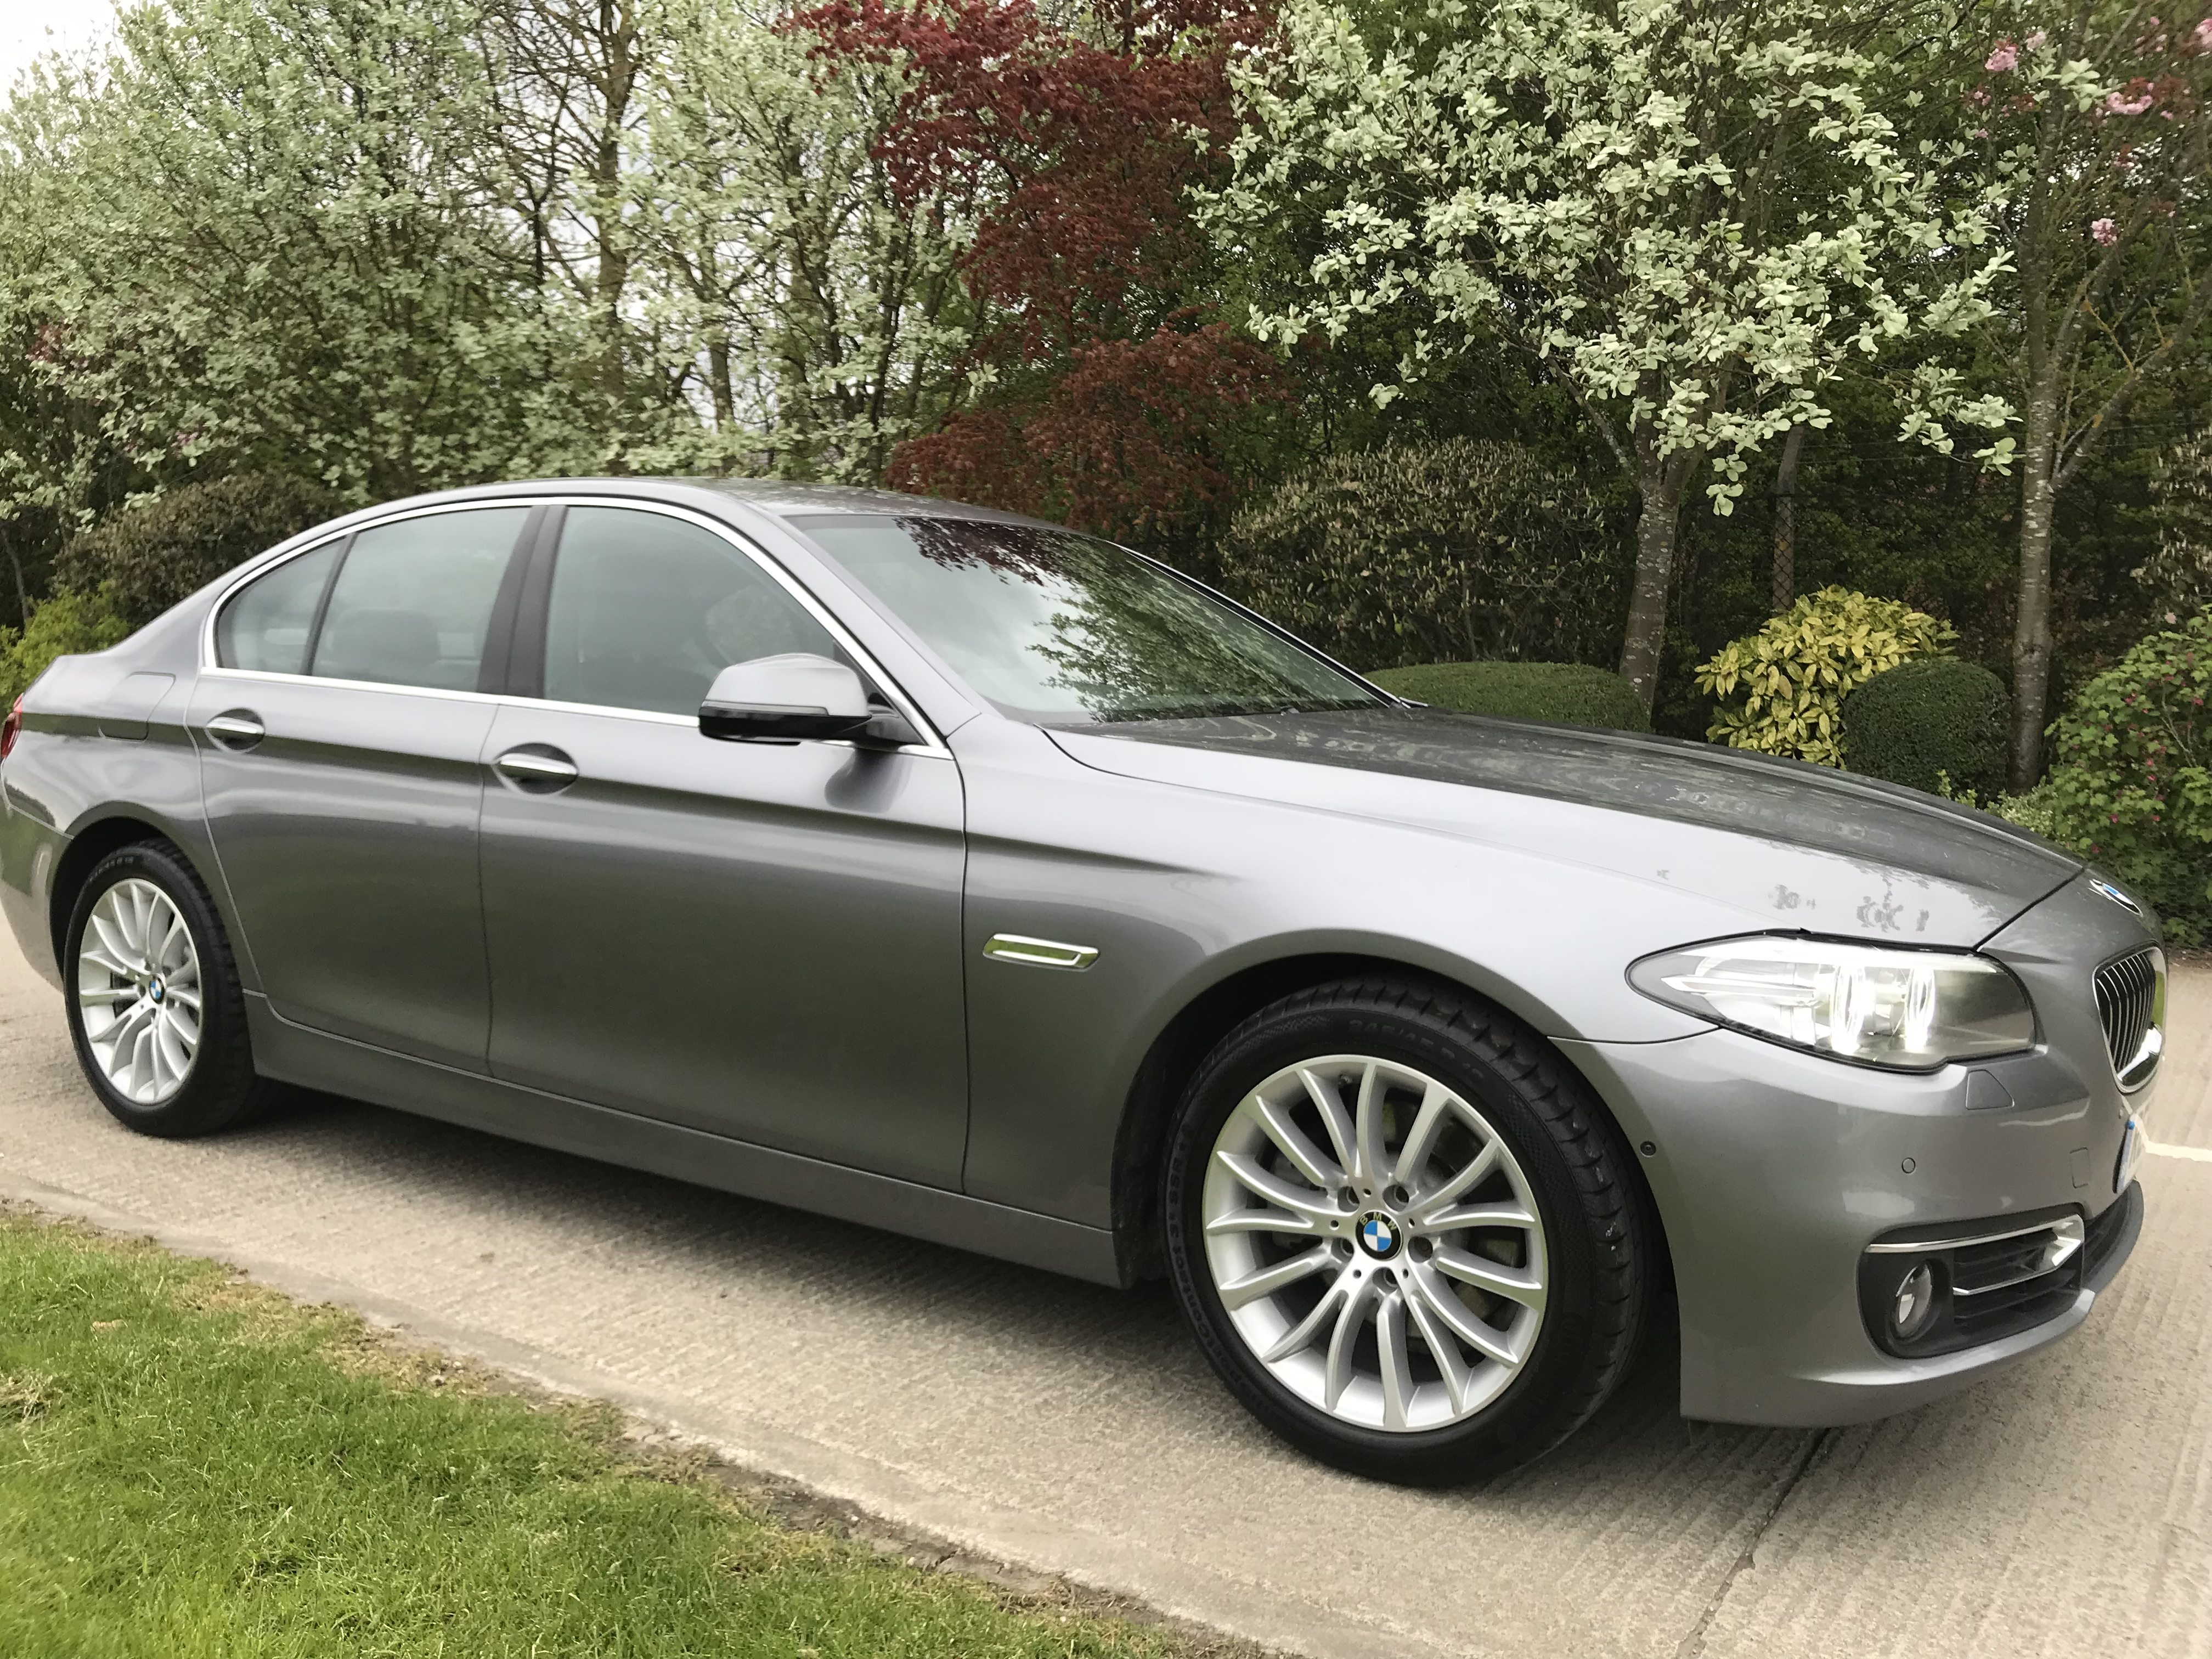 BMW 520d LUXURY AUTOMATIC (190) sold by S & C Car Sales Harrogate